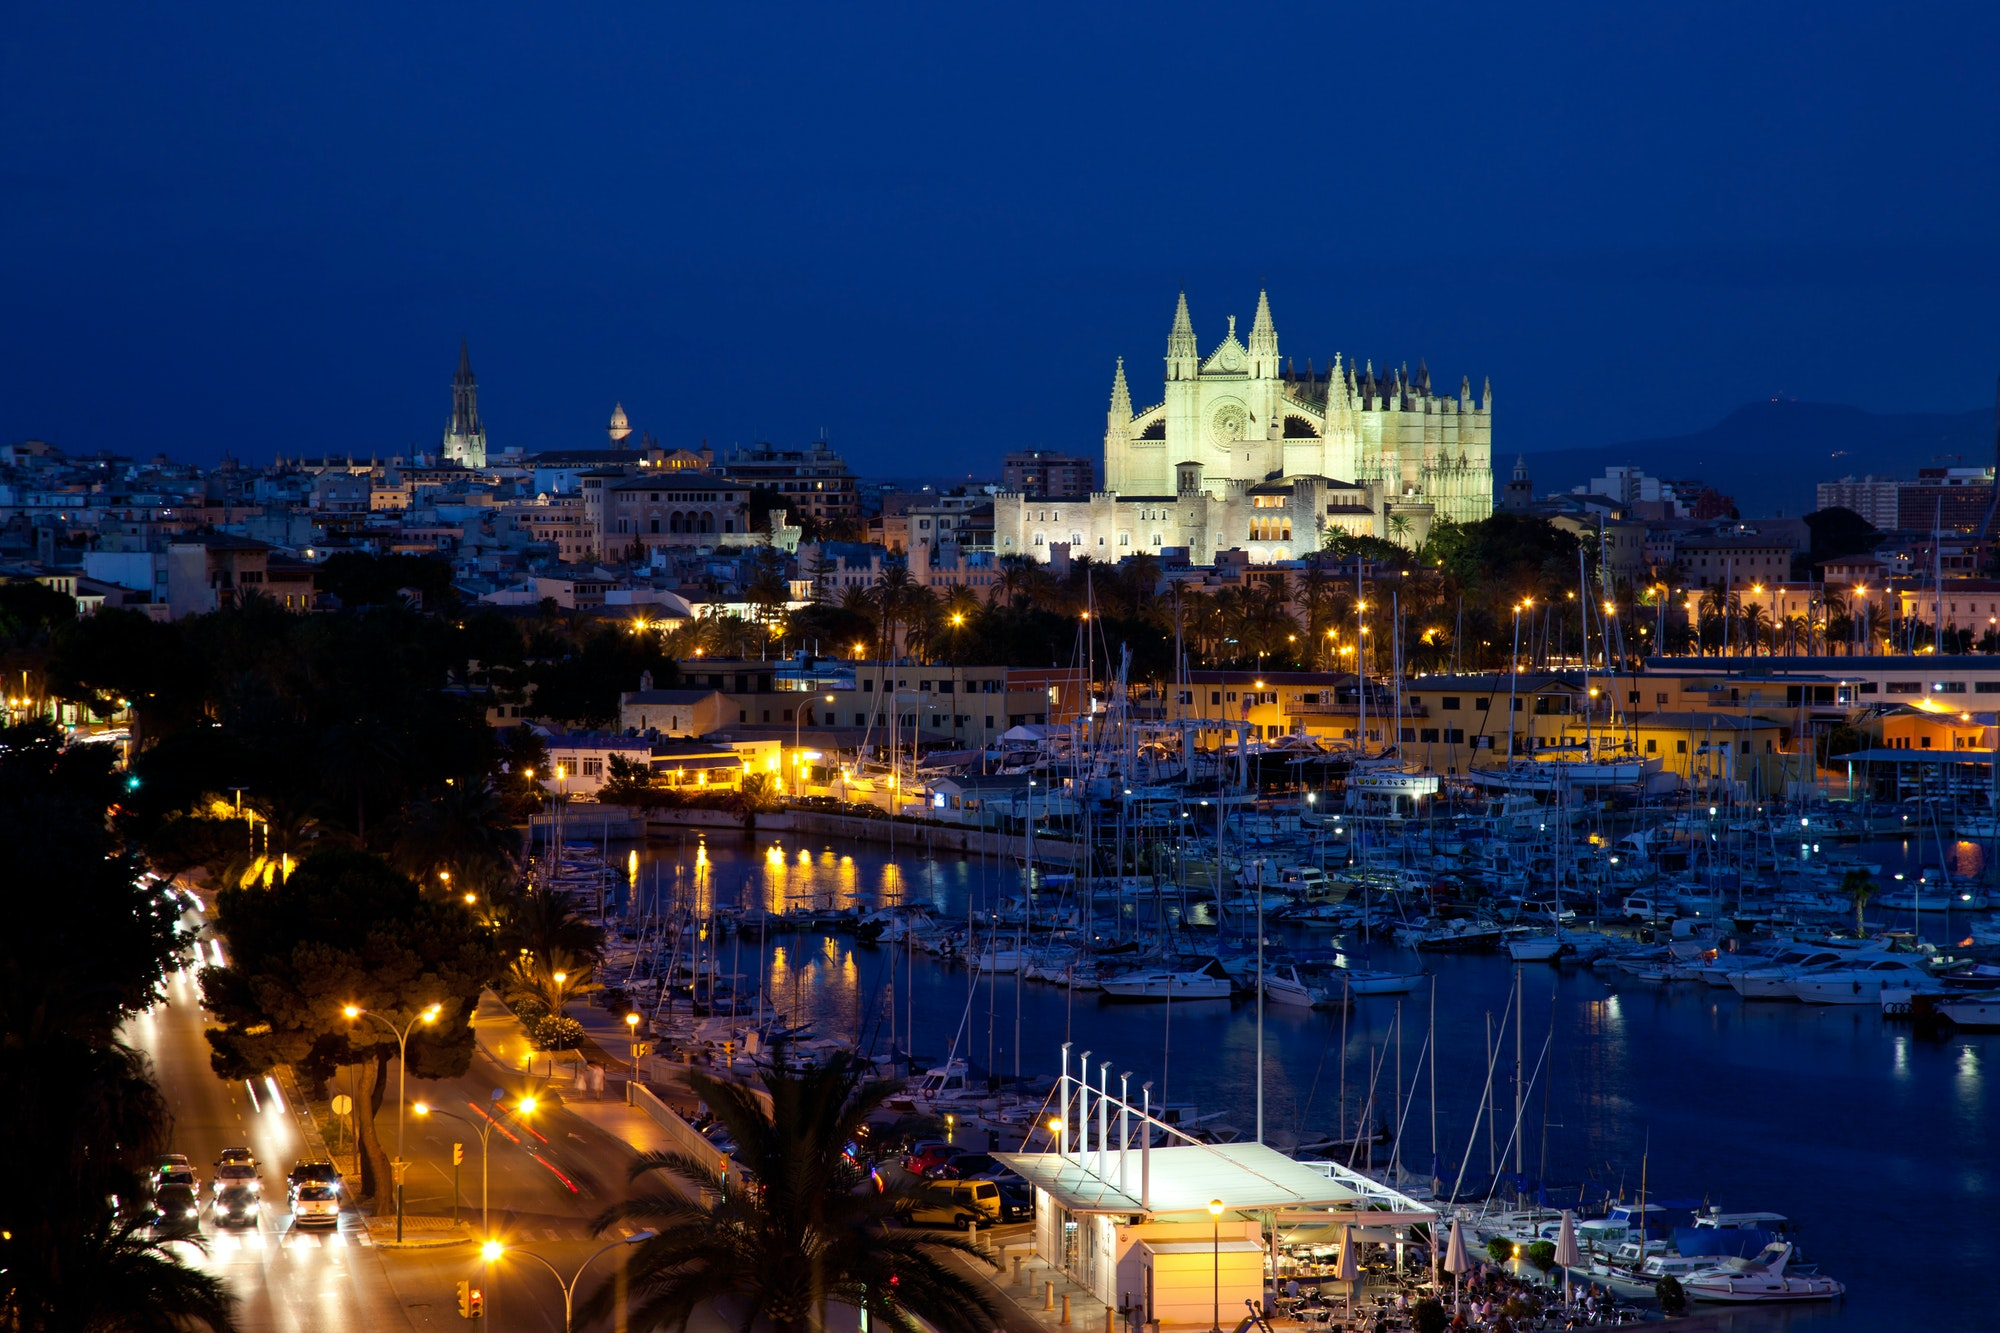 Prices in Palma de Mallorca are up 58%